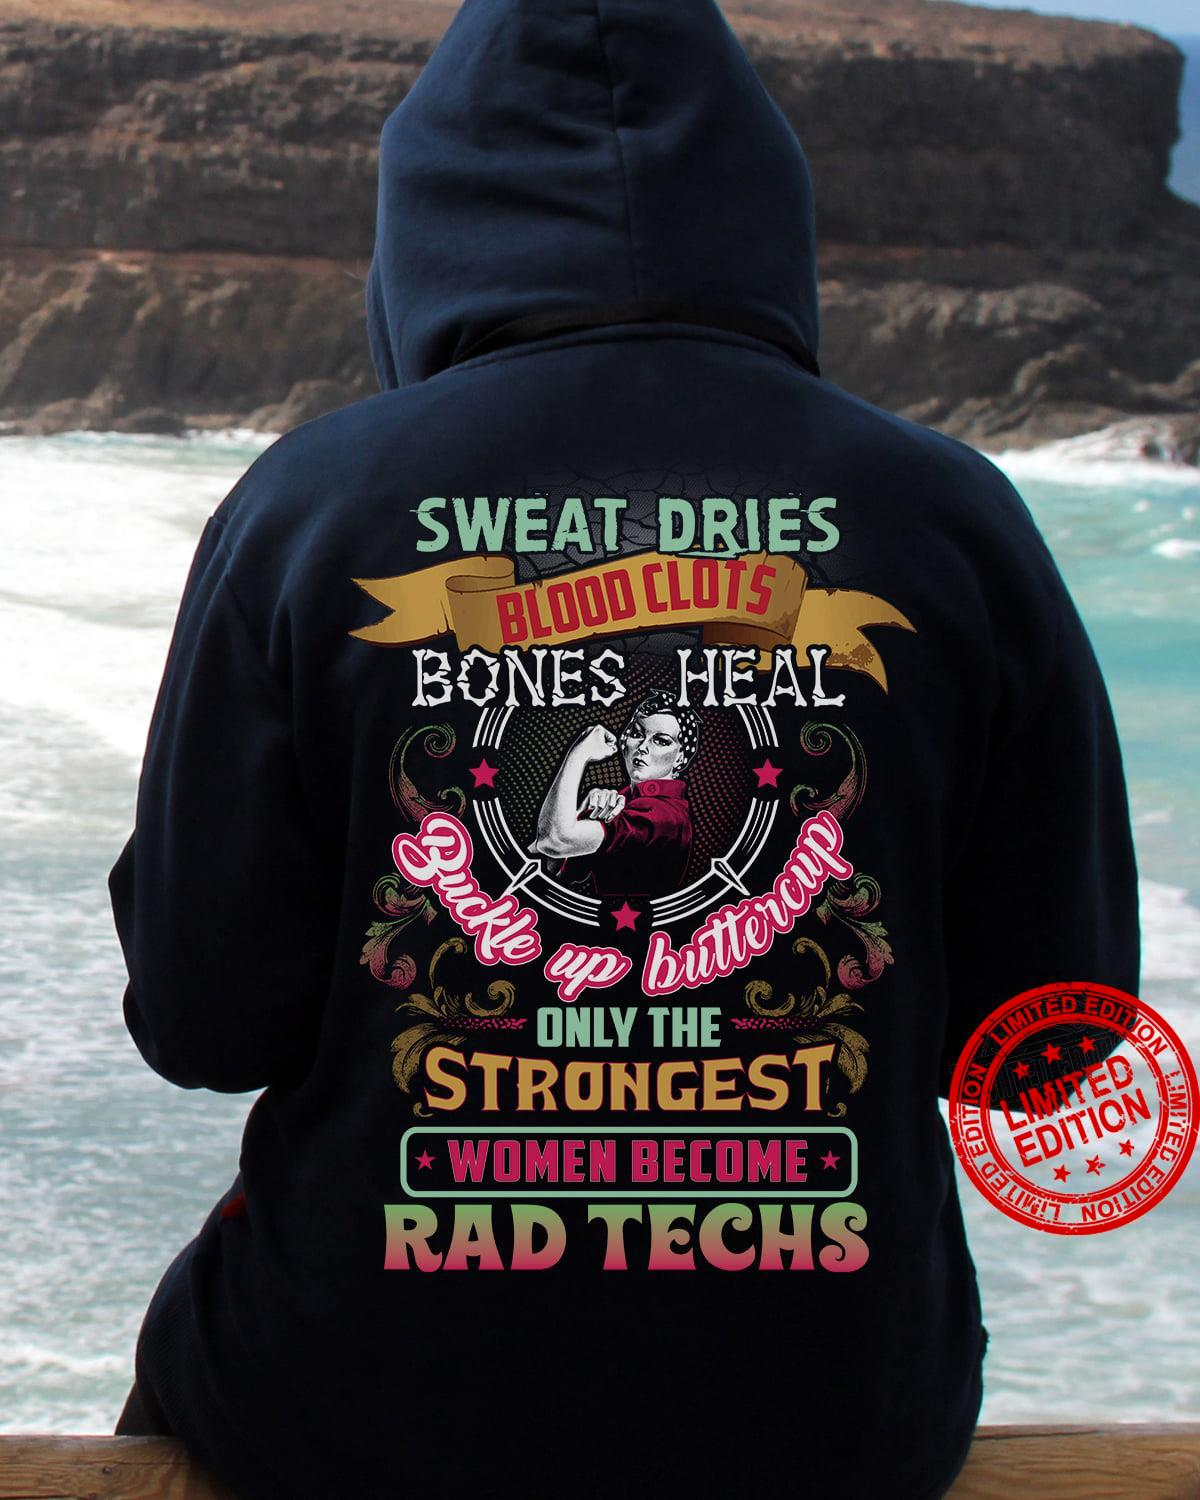 Sweat Dries Blood Clots Bones Heal Buckle Up Buttercup Only The Strongest Shirt